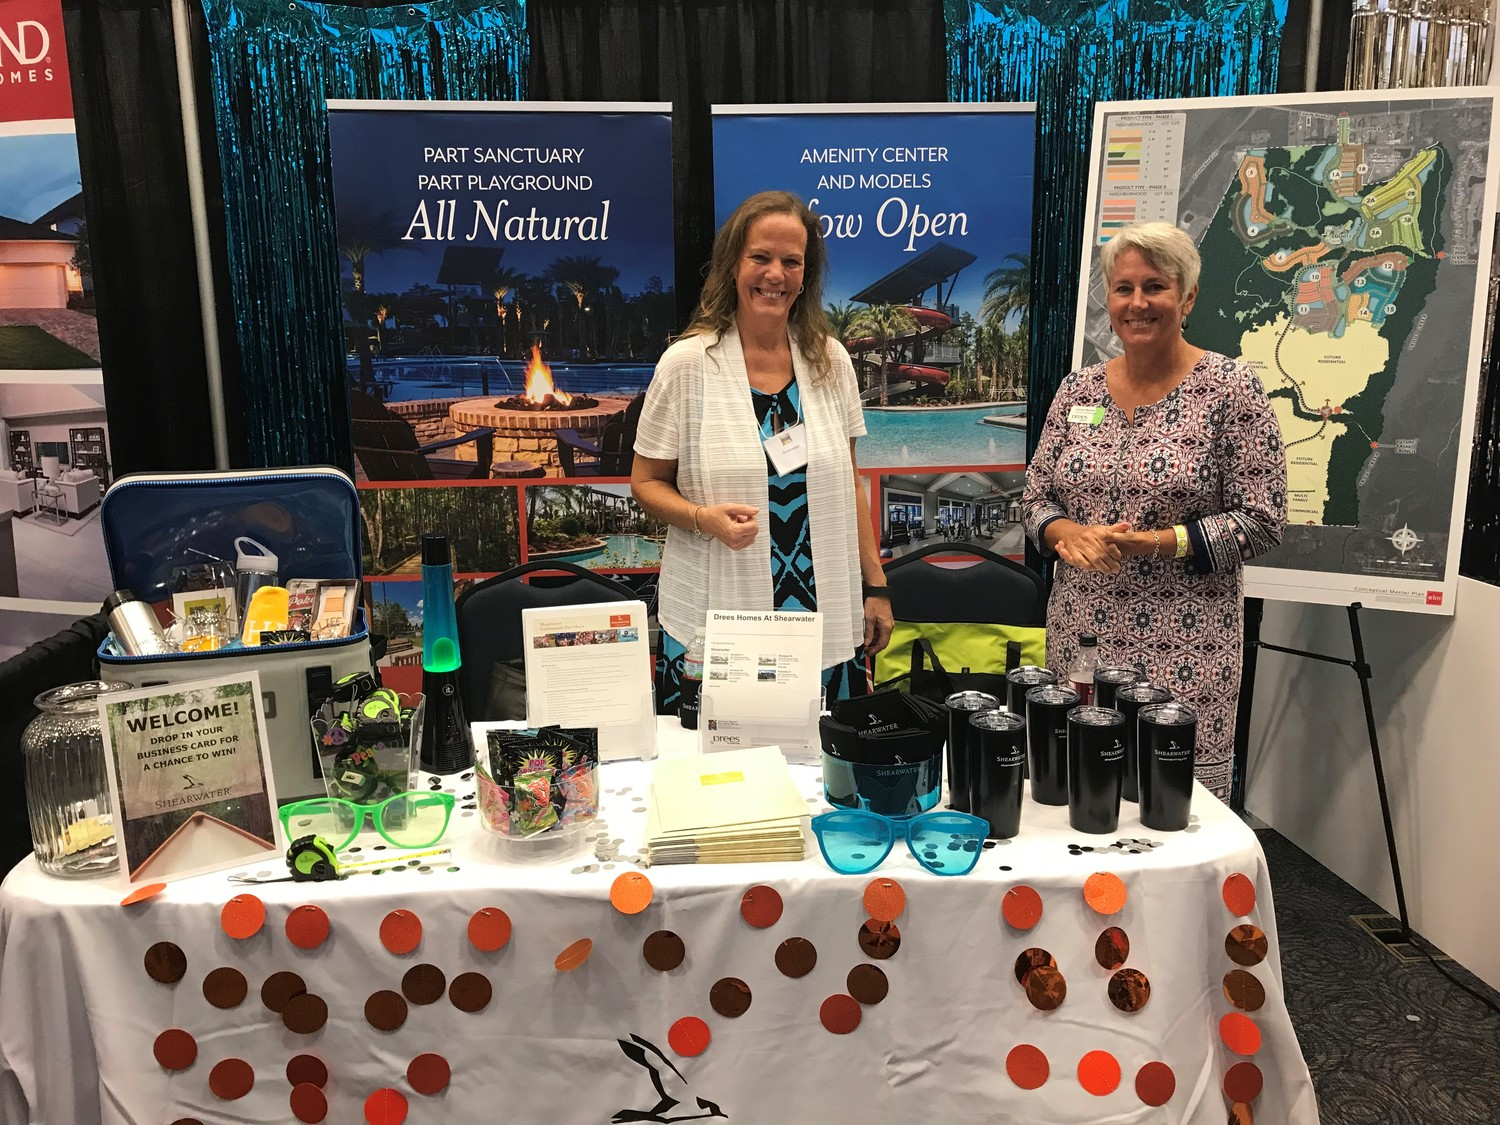 Representatives from Shearwater and Drees Homes, one of Shearwater's homebuilders, welcome visitors at the annual Realtor Builder Tradeshow.